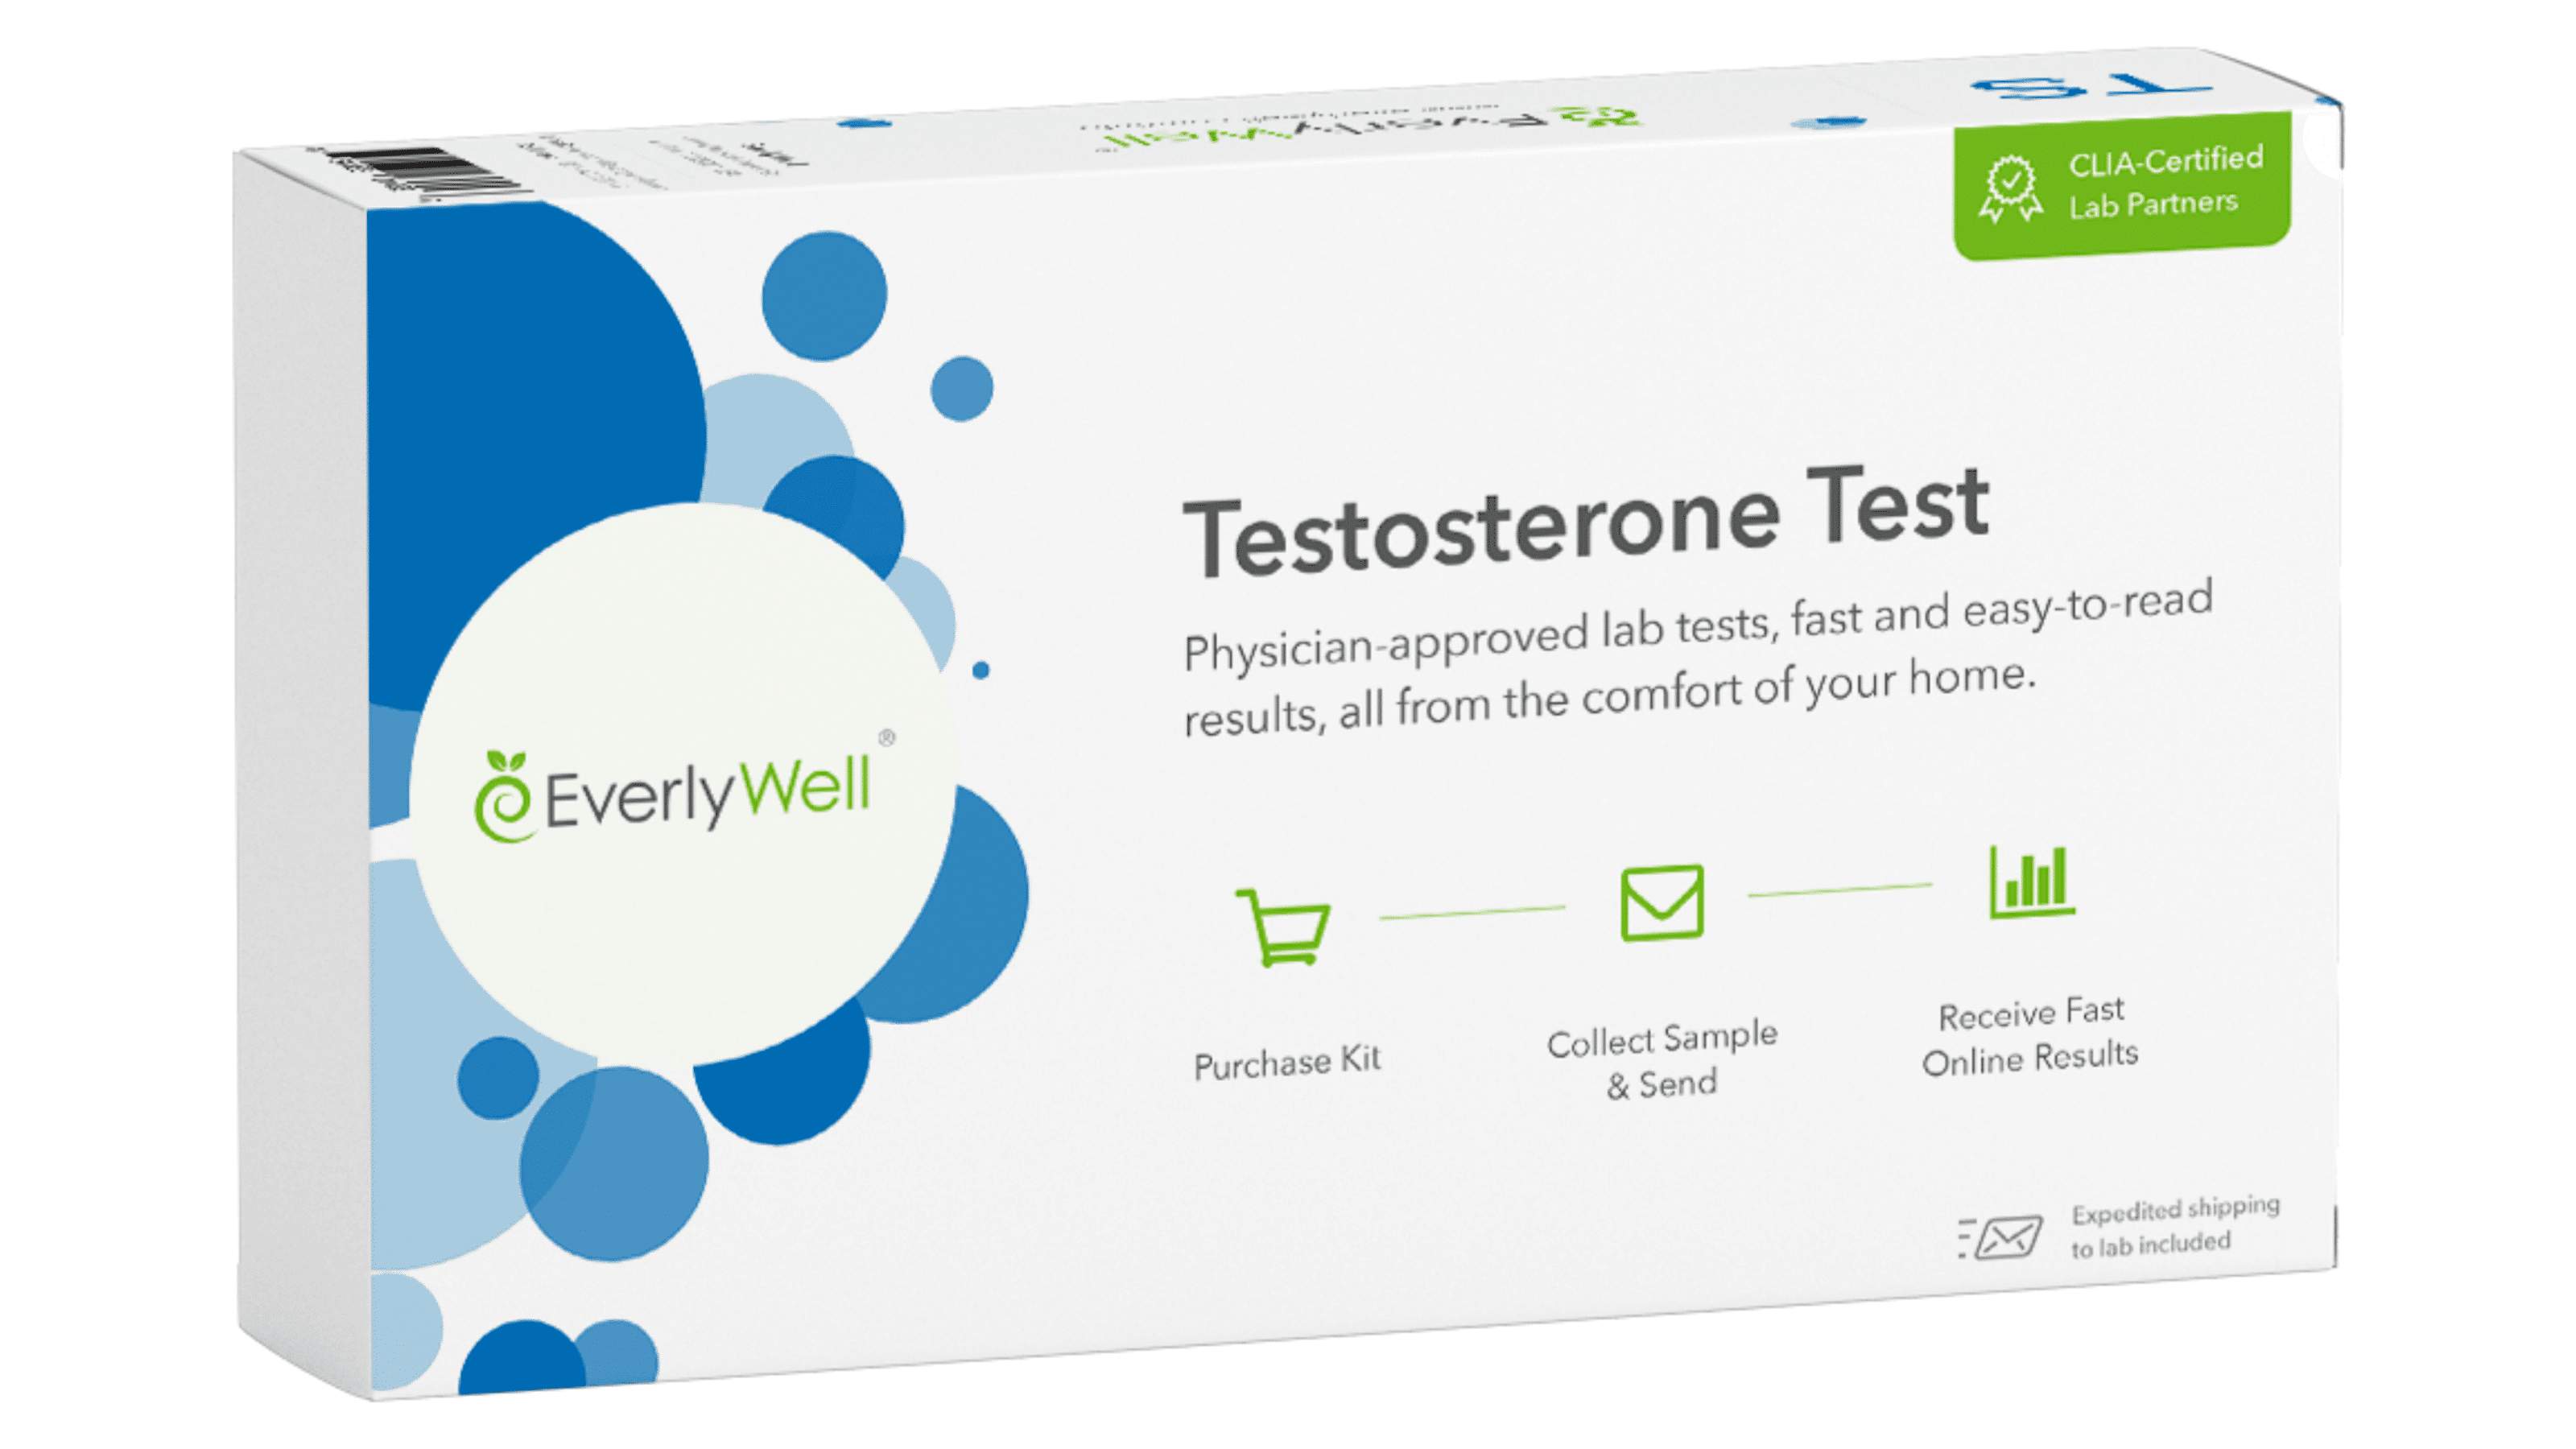 EverlyWell At-home Testosterone Test - Check to see if you